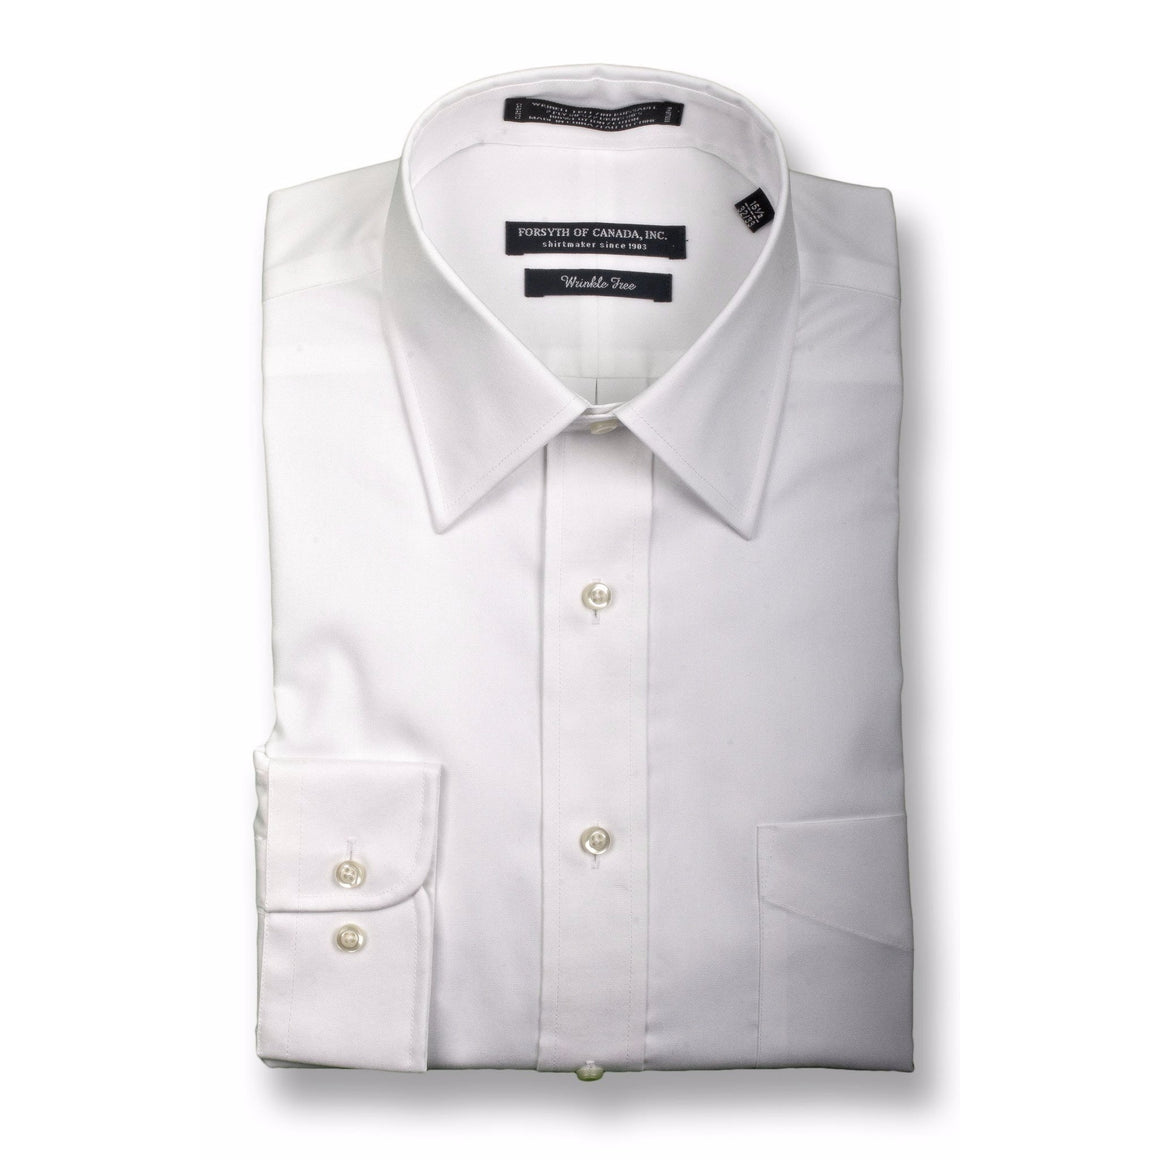 FORSYTH OF CANADA™ - THE FREEDOM SHIRT™ -  LUXURY 2 PLY COTTON - LAY DOWN COLLAR - 539MAIN - 1